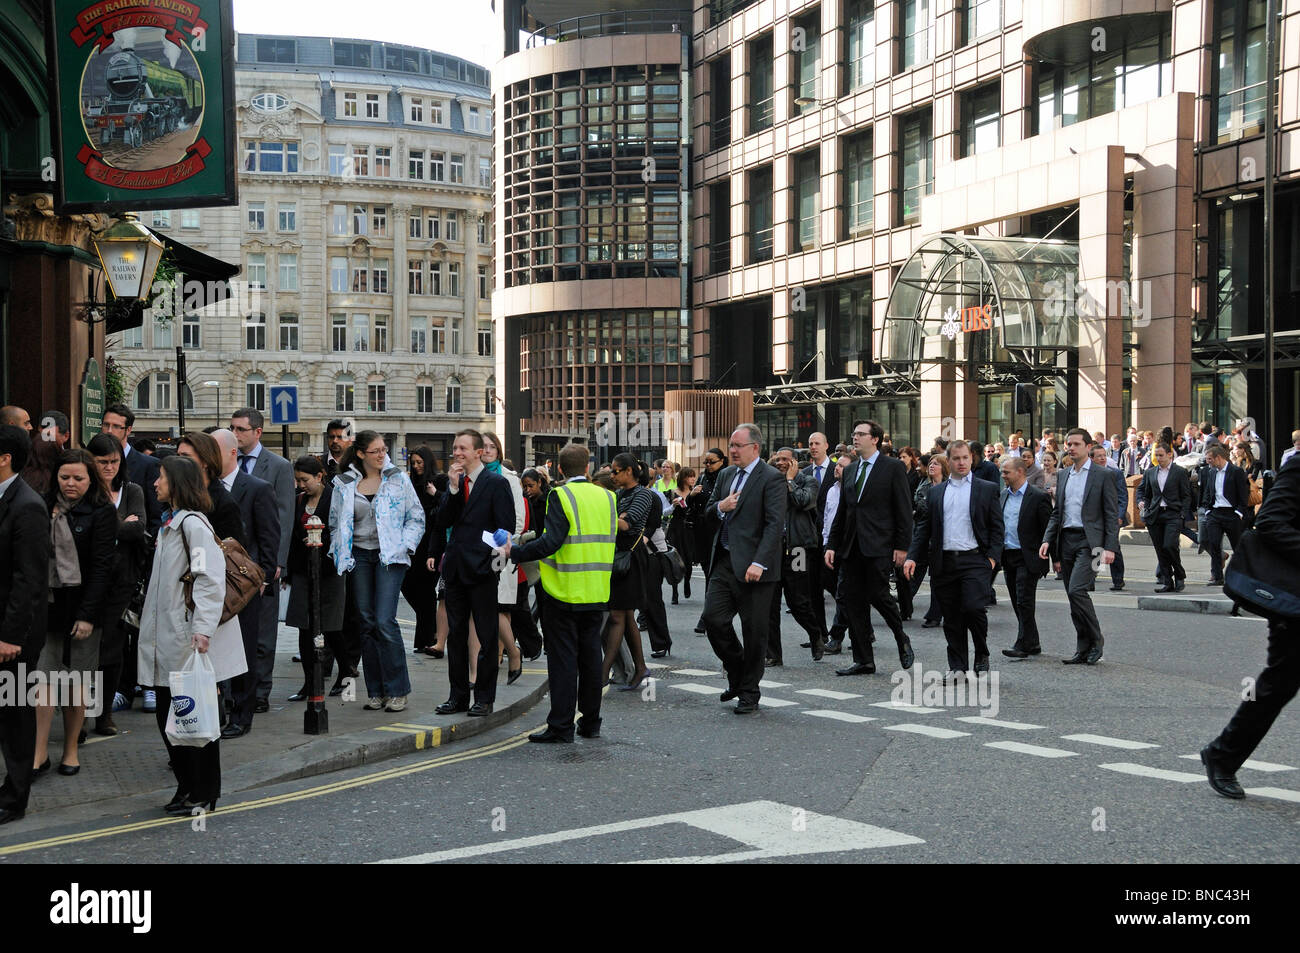 Crowd of people evacuated from a building near Liverpool Street Station London England UK Stock Photo